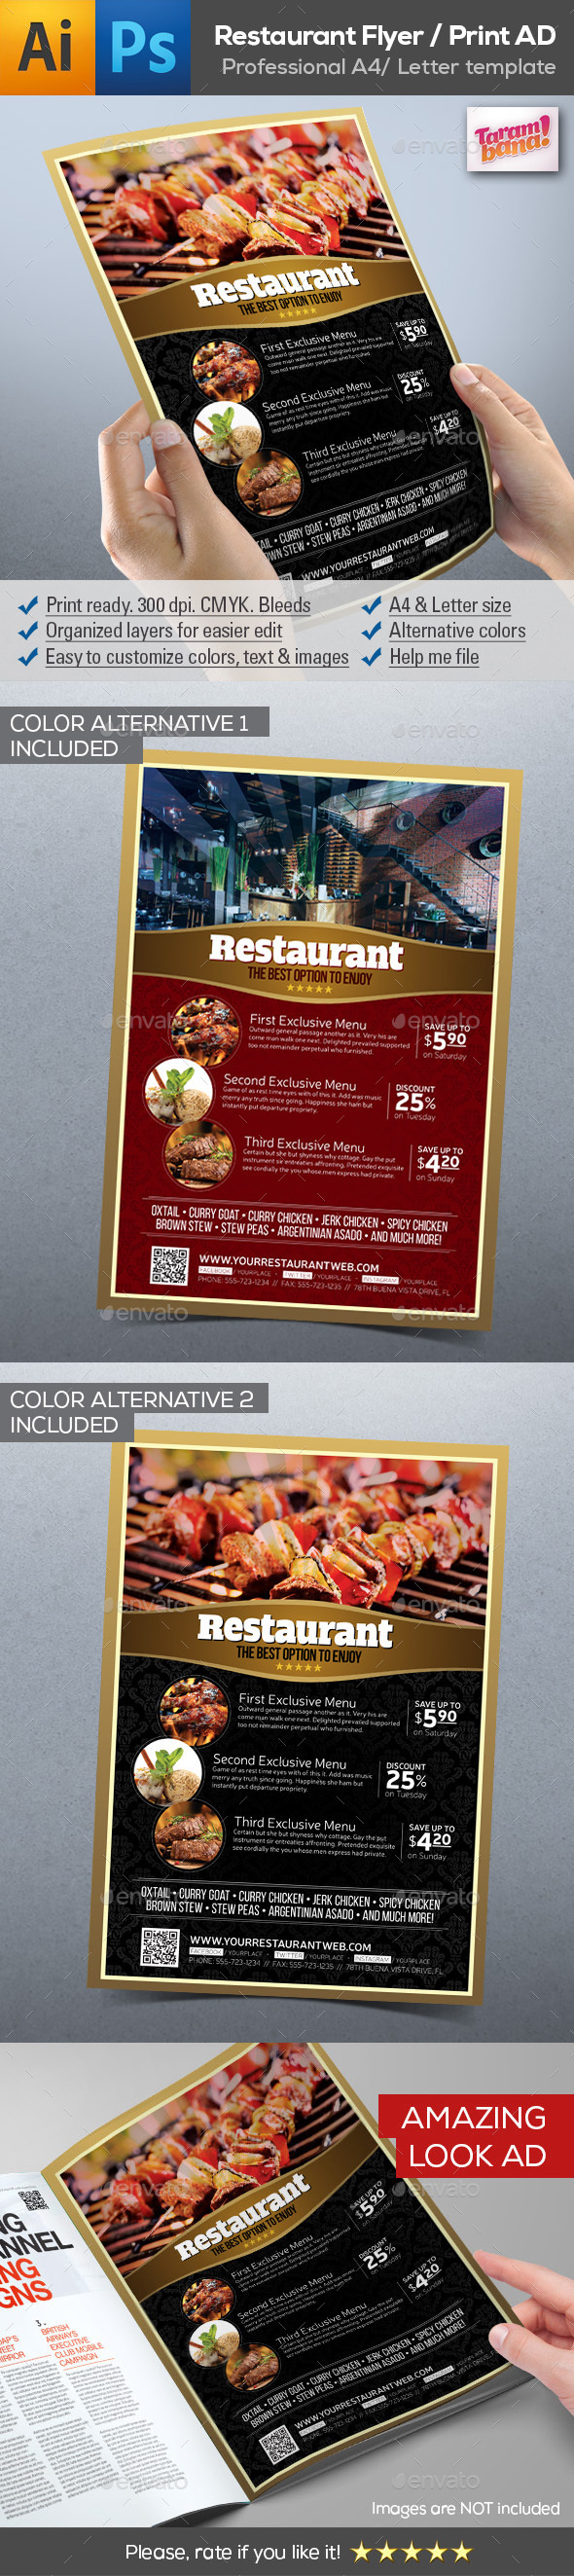 Modern Restaurant Flyer AD Template